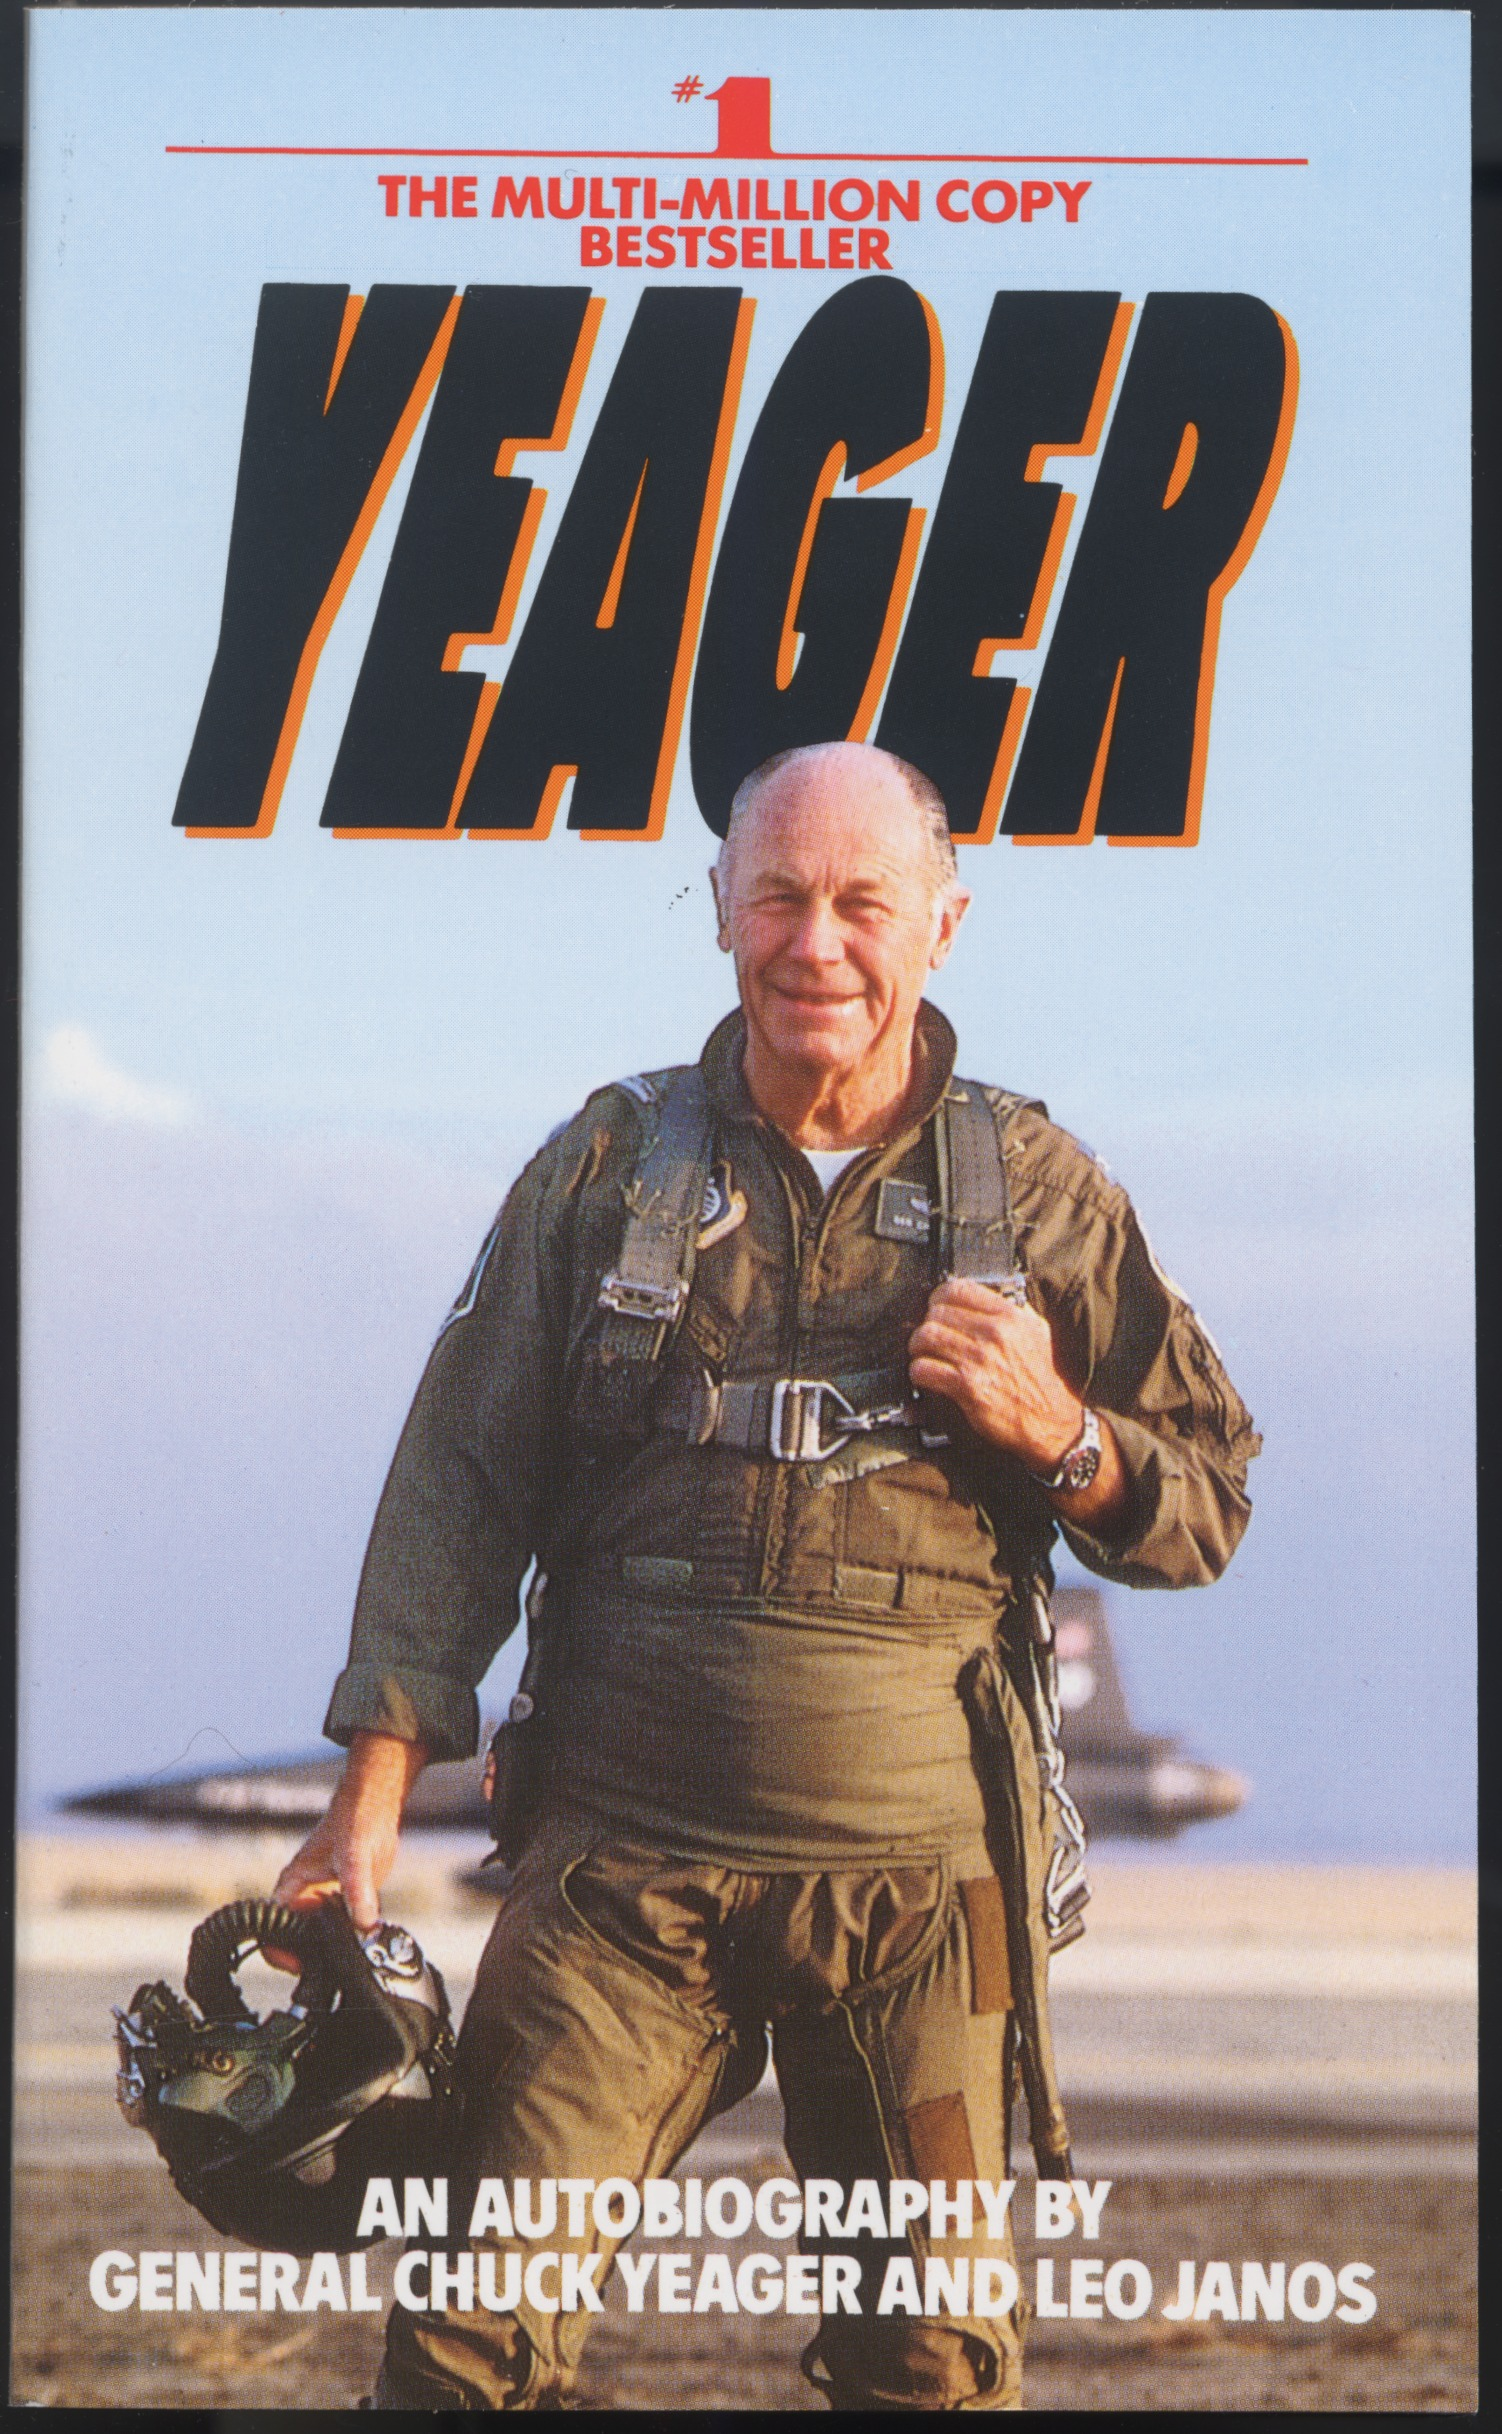 yeager an autobiography